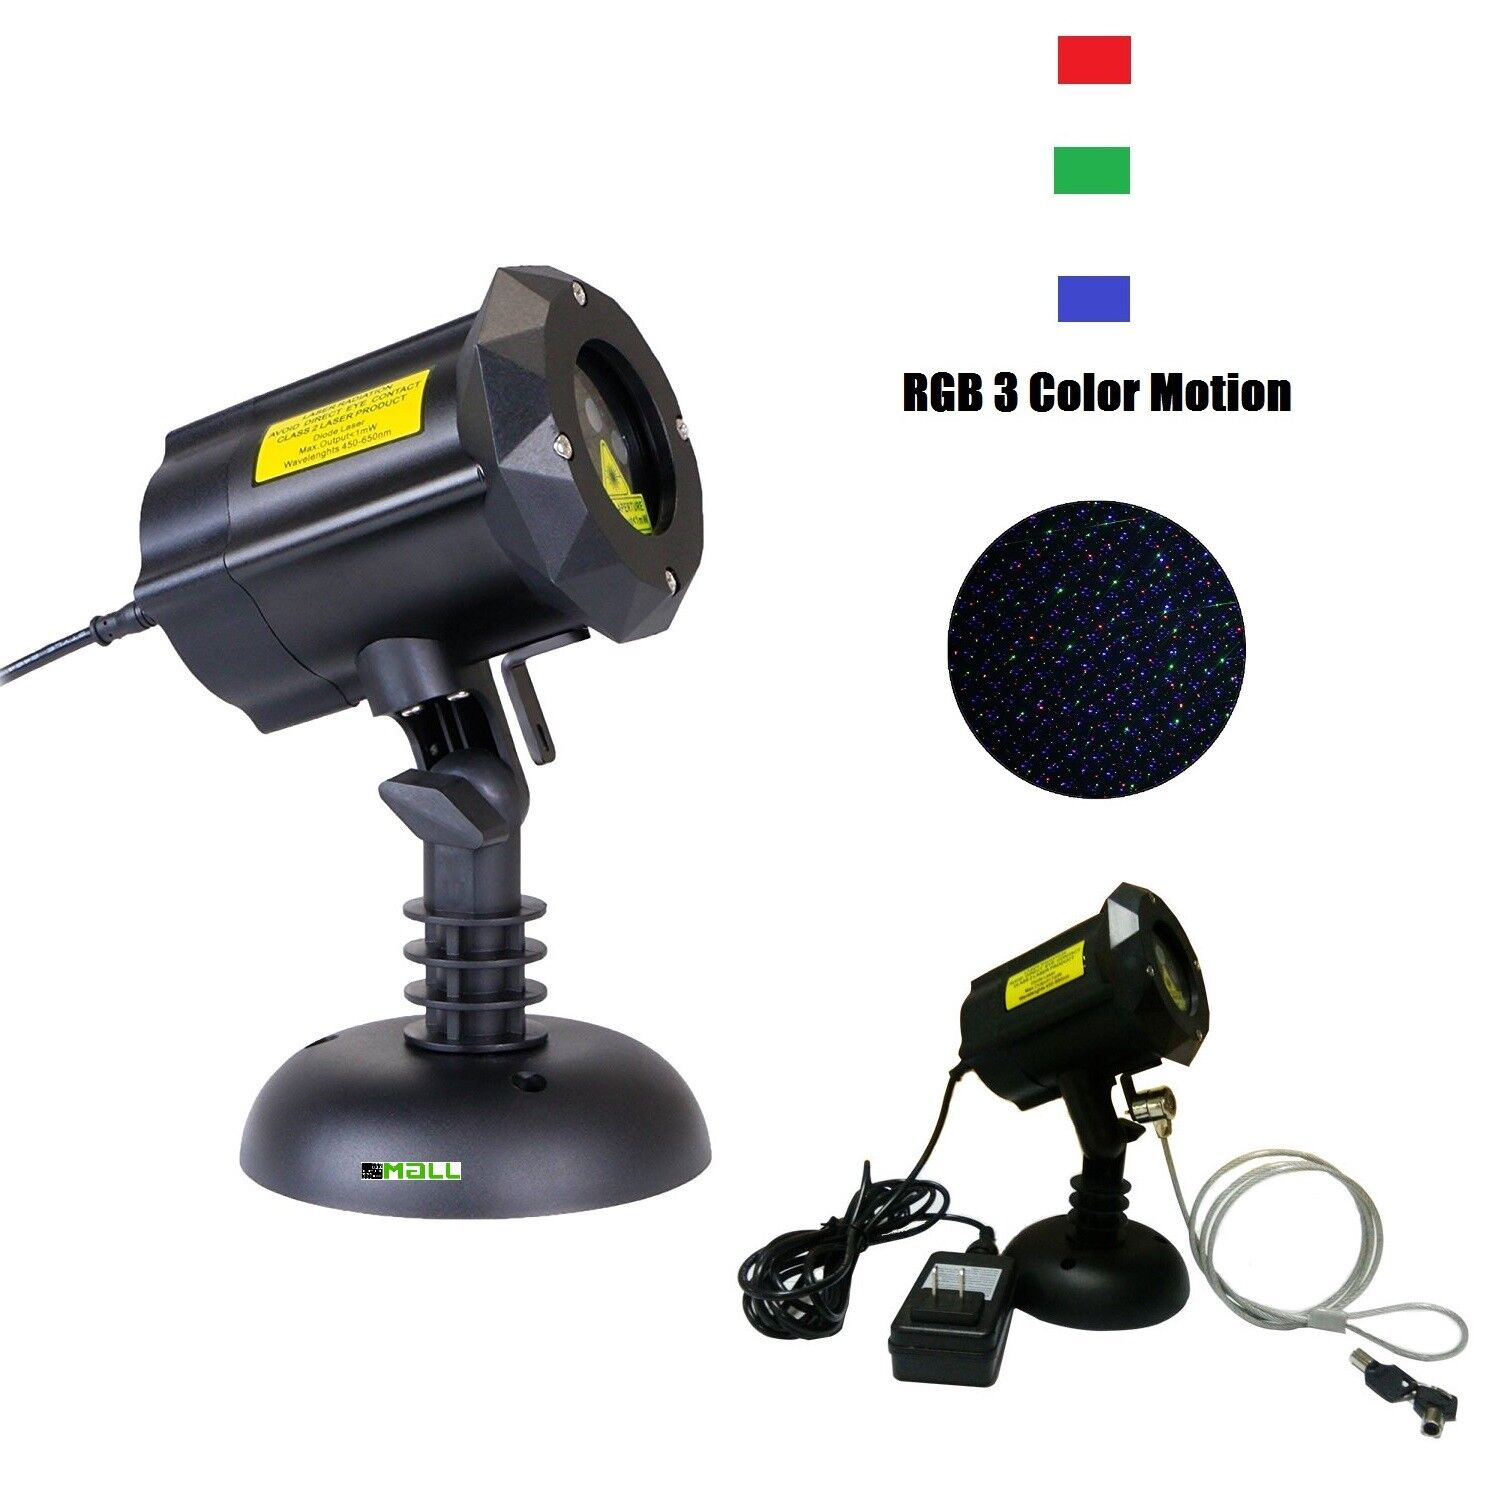 Moving Firefly LEDMALL RGB Outdoor Garden Laser Christmas Lights Lights Lights with RF remote 141251